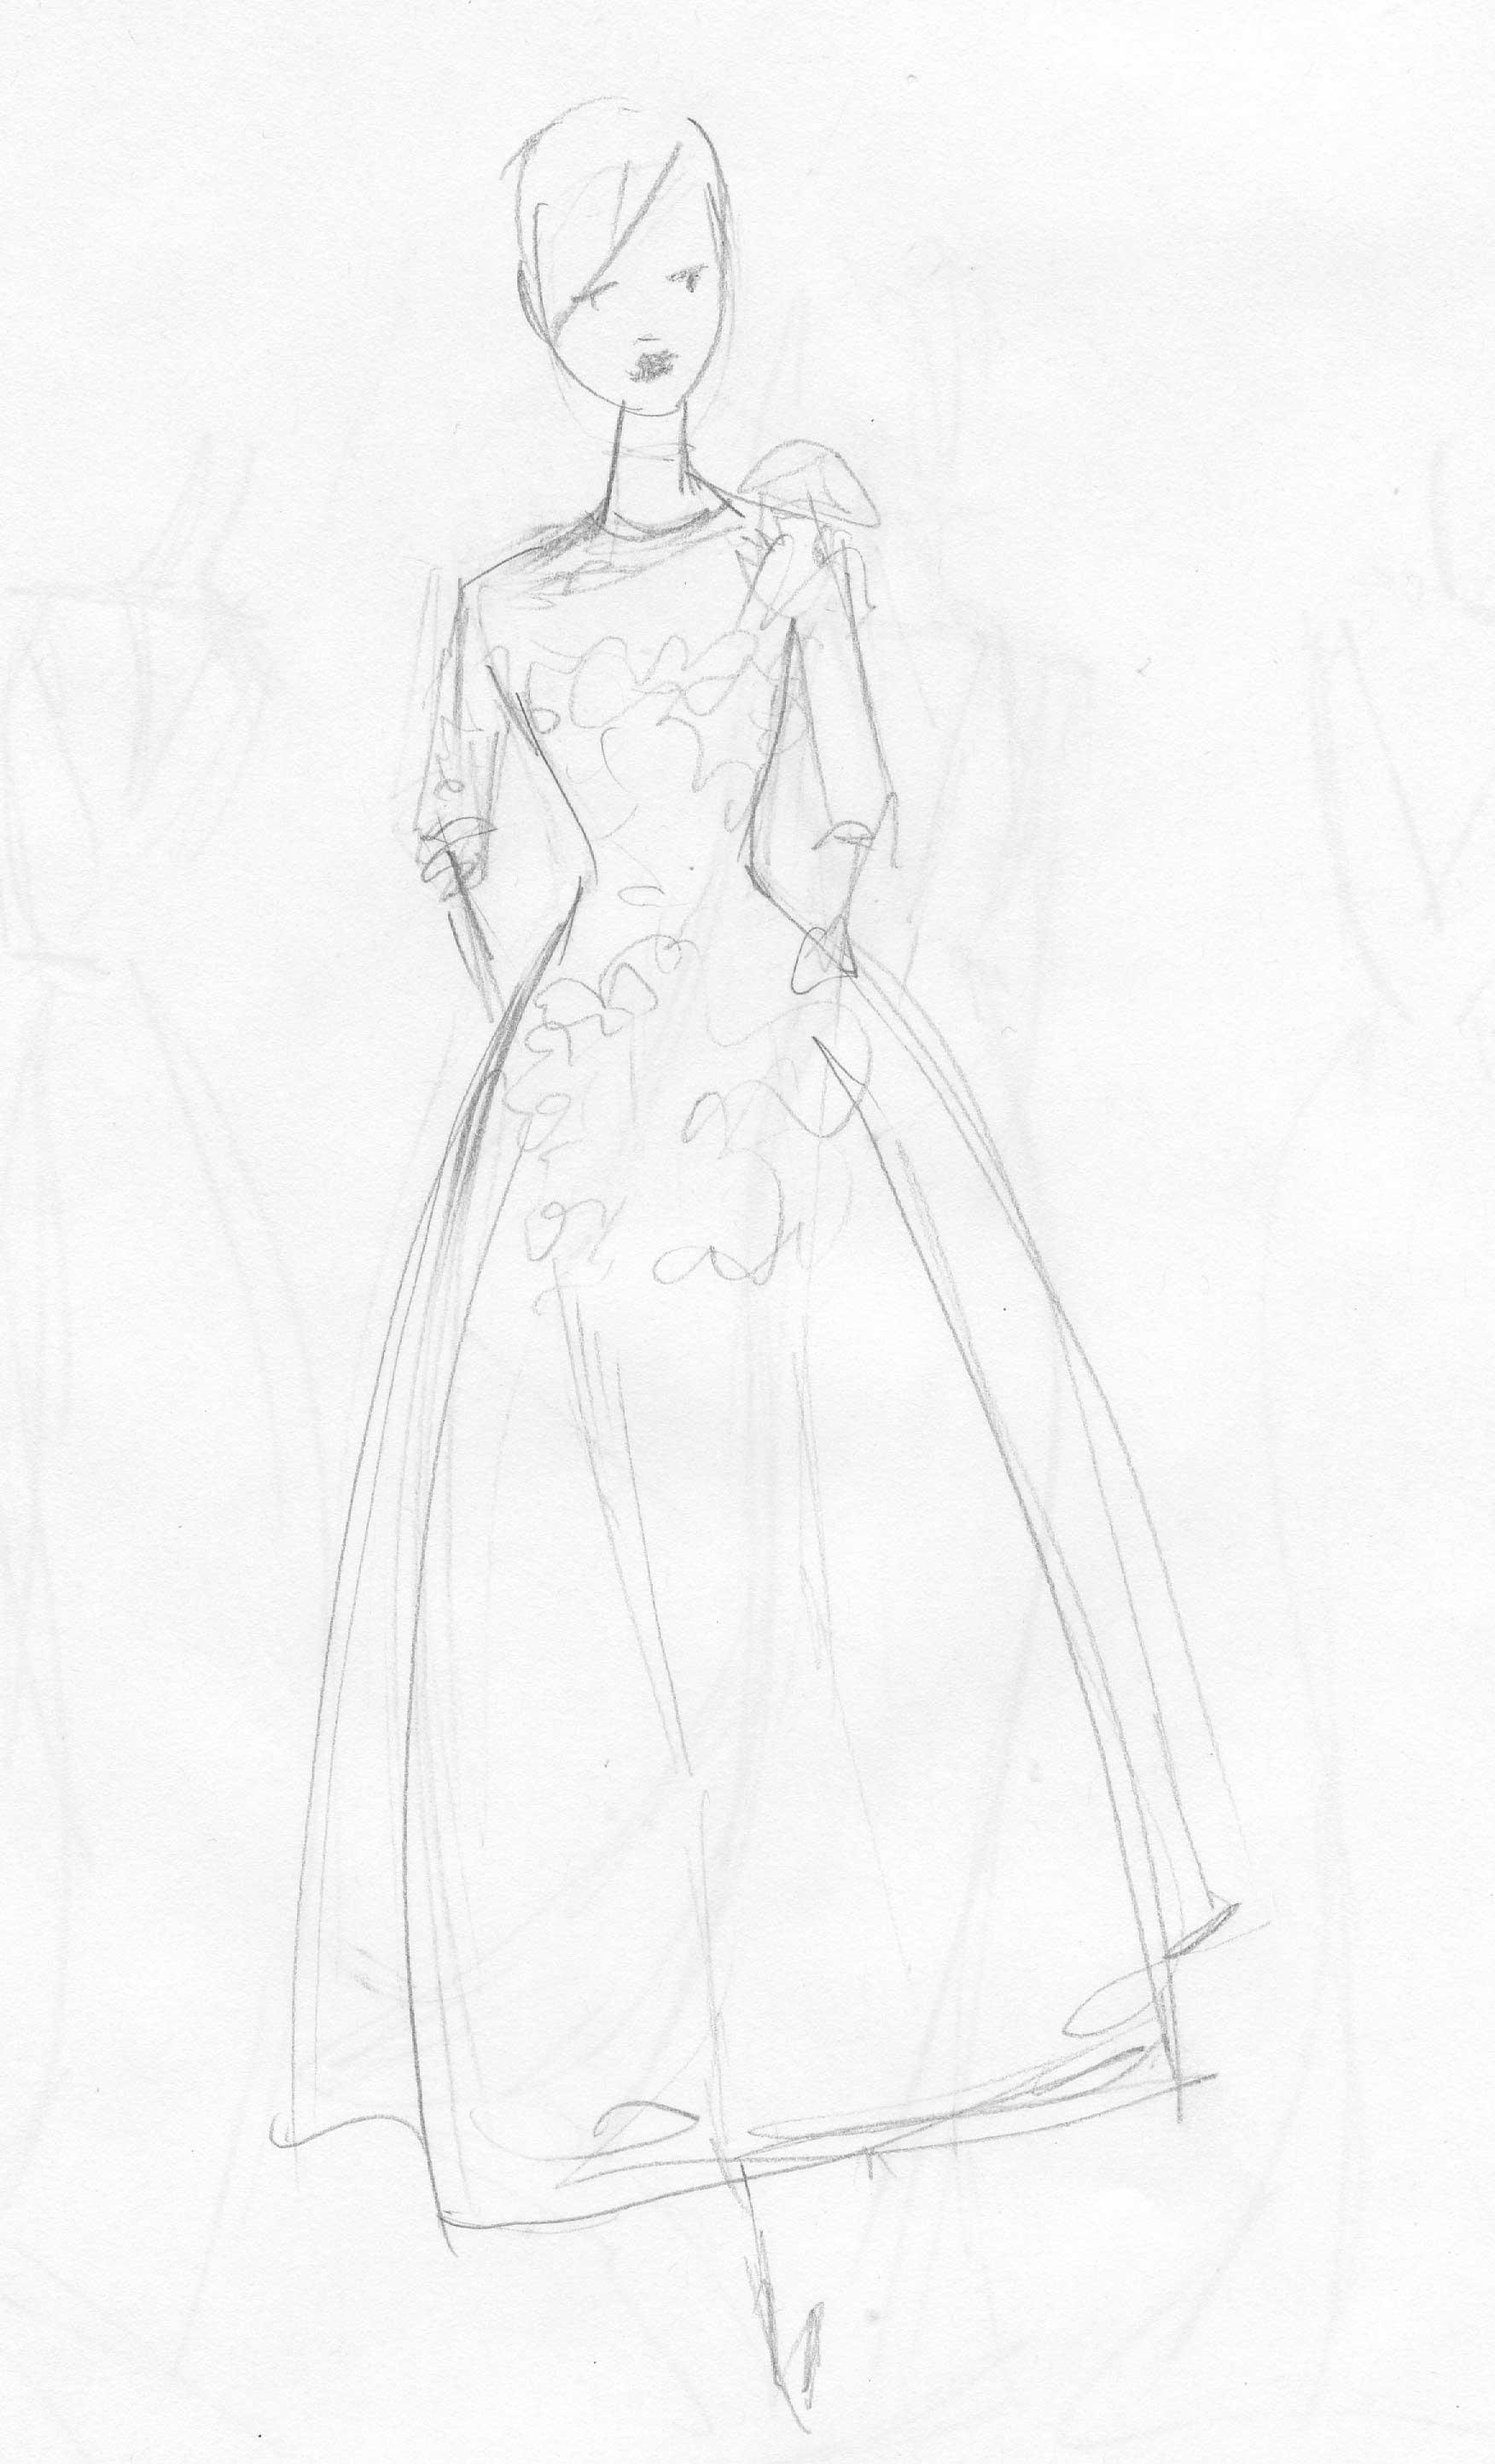 *(SKETCHES)* a walk down memory lane - image 3 - student project